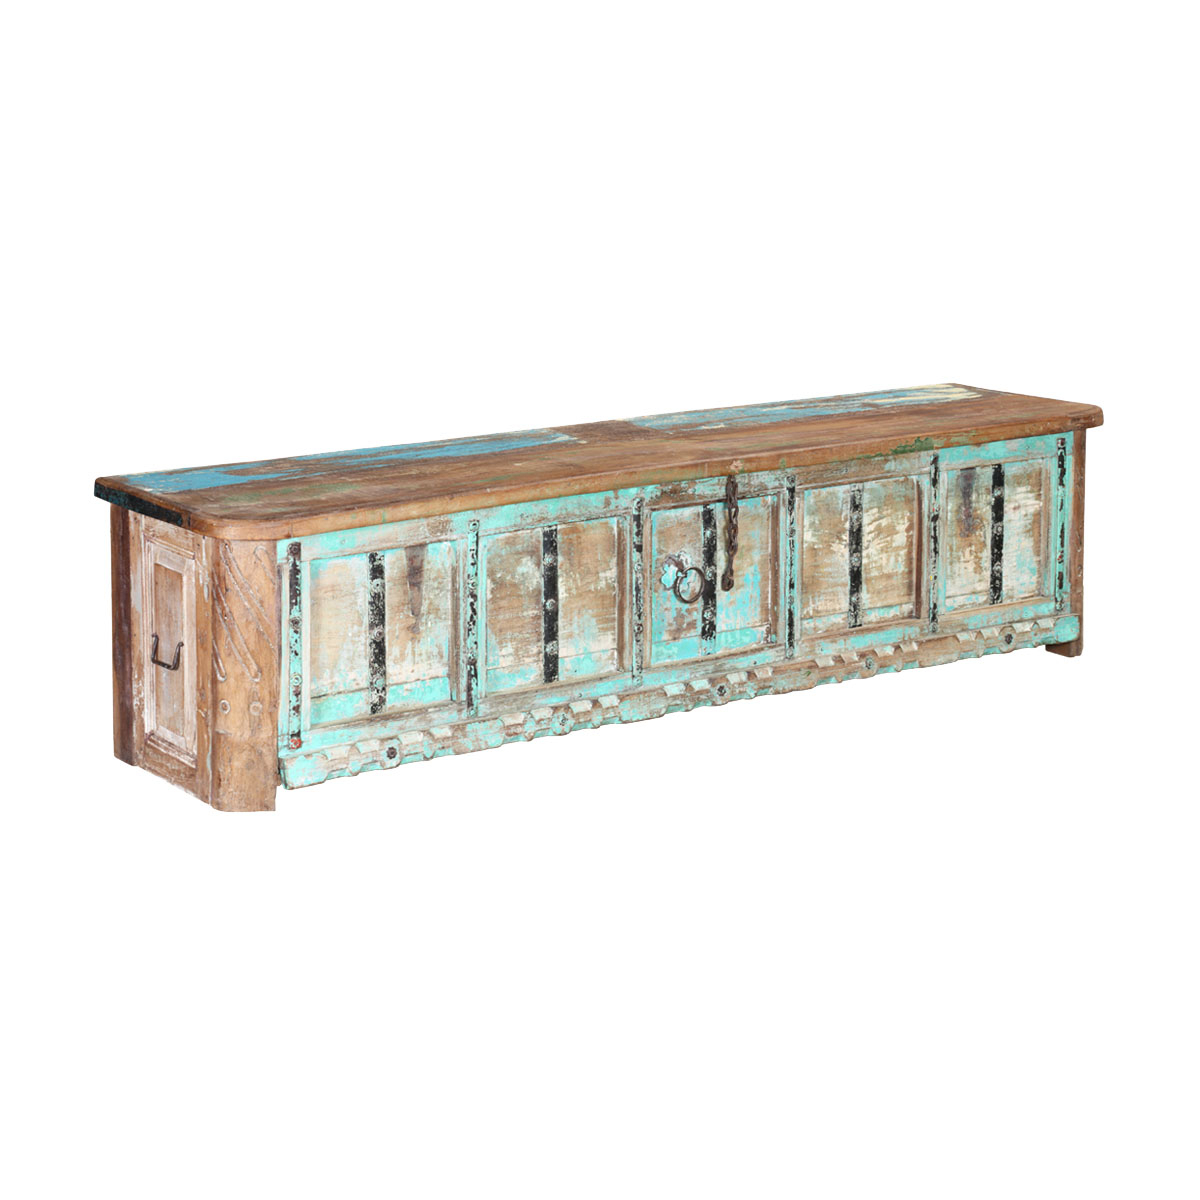 Boyce Sideboards With Regard To Well Known Boyce Rustic Turquoise Reclaimed Wood Large Storage Coffee Table Chest (View 5 of 20)